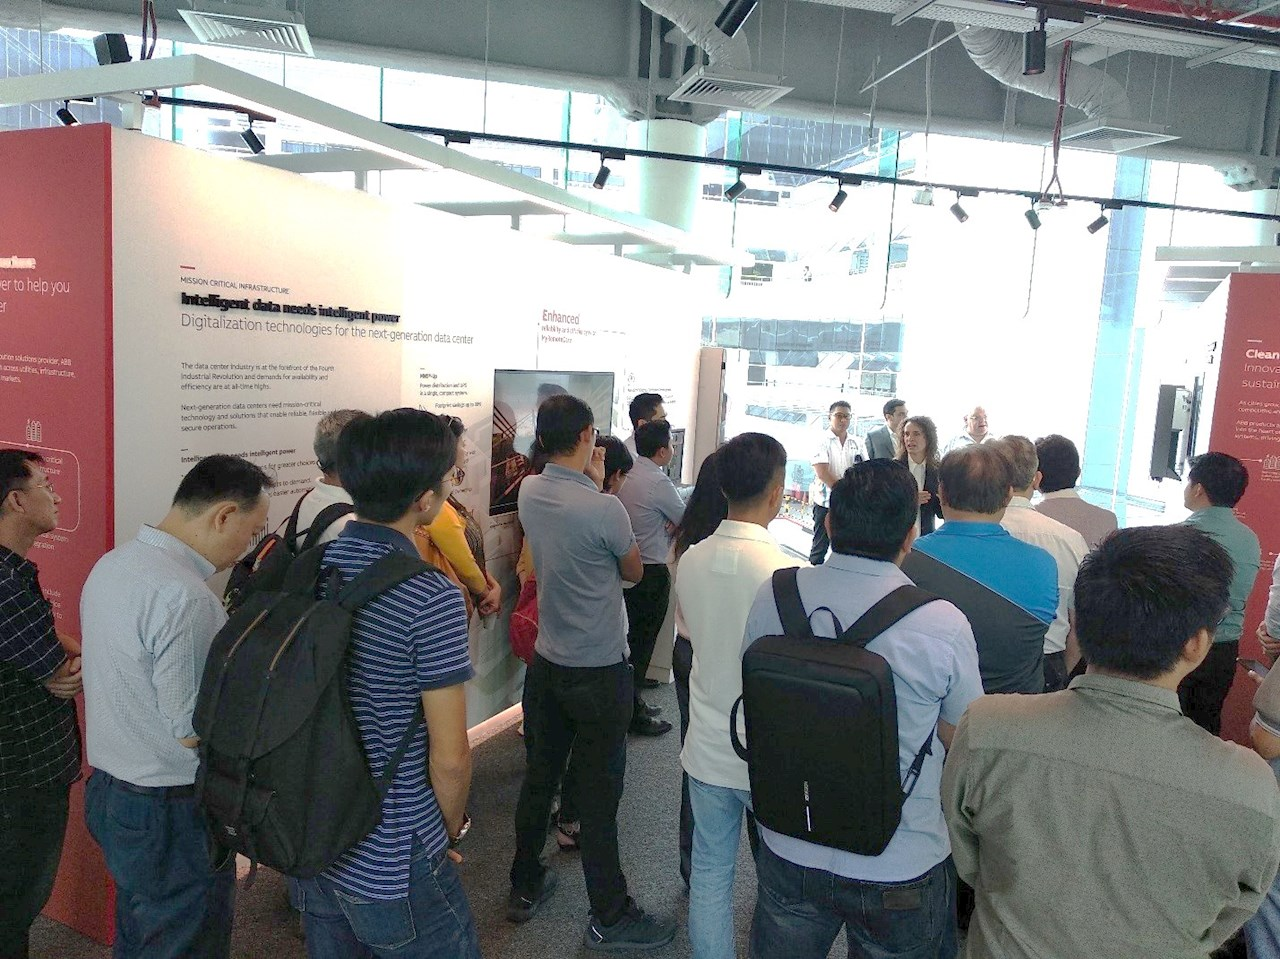 Attendees taking a tour of ABB's Customer Innovation Center in Singapore